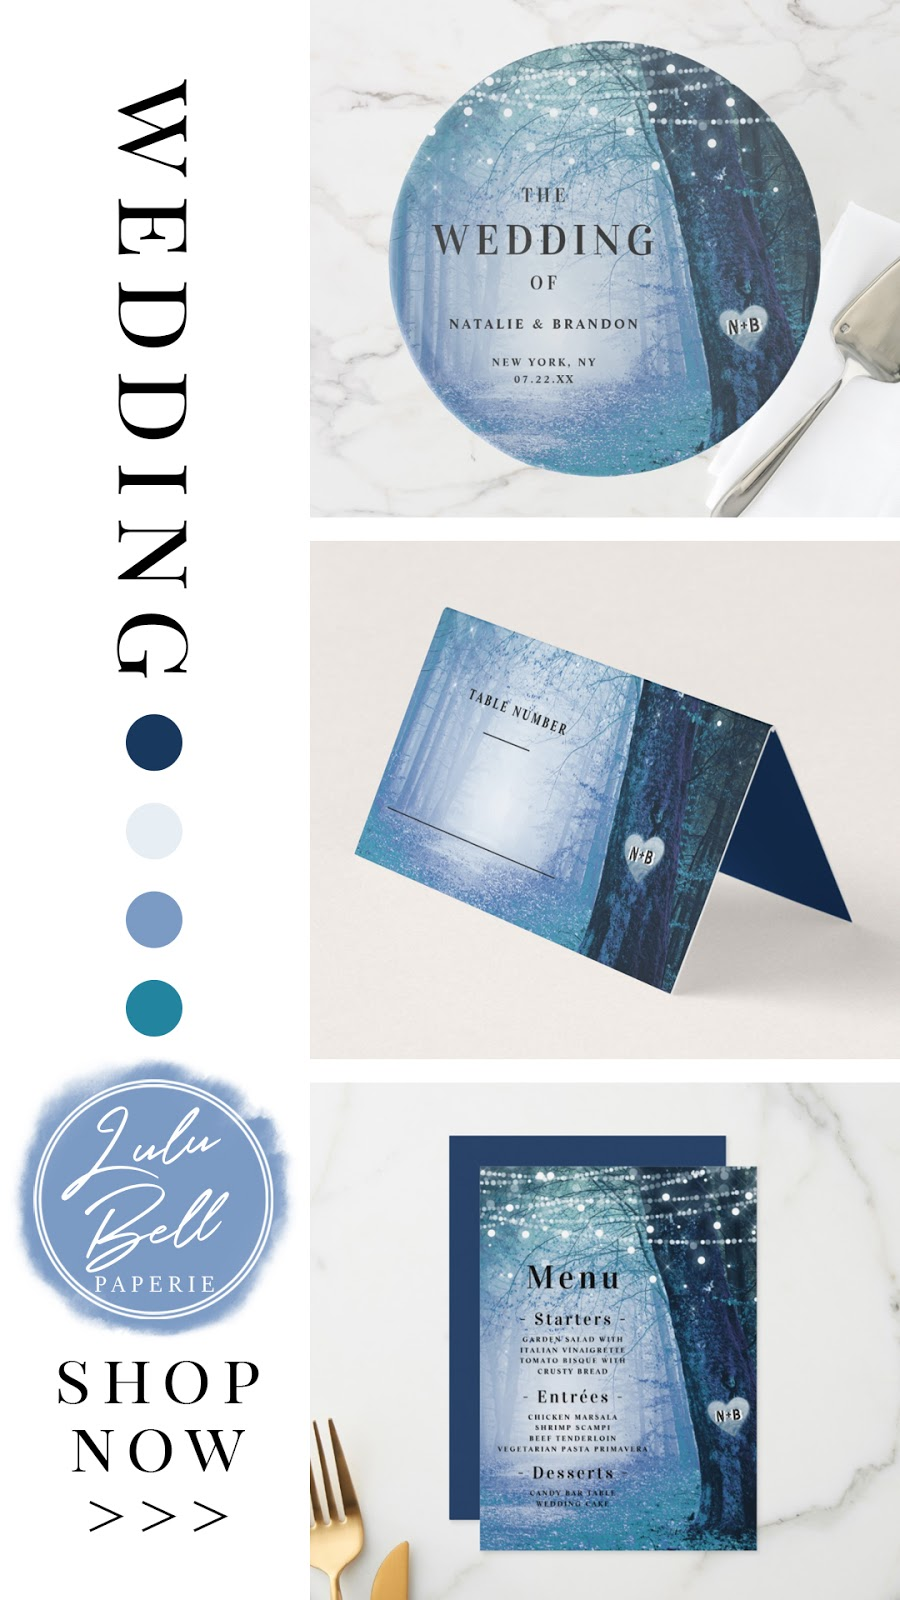 Enchanted Forest Navy Blue Wedding Invitation Suite, Dinner Menus, Cake Stand, Table Decor, and Place Cards